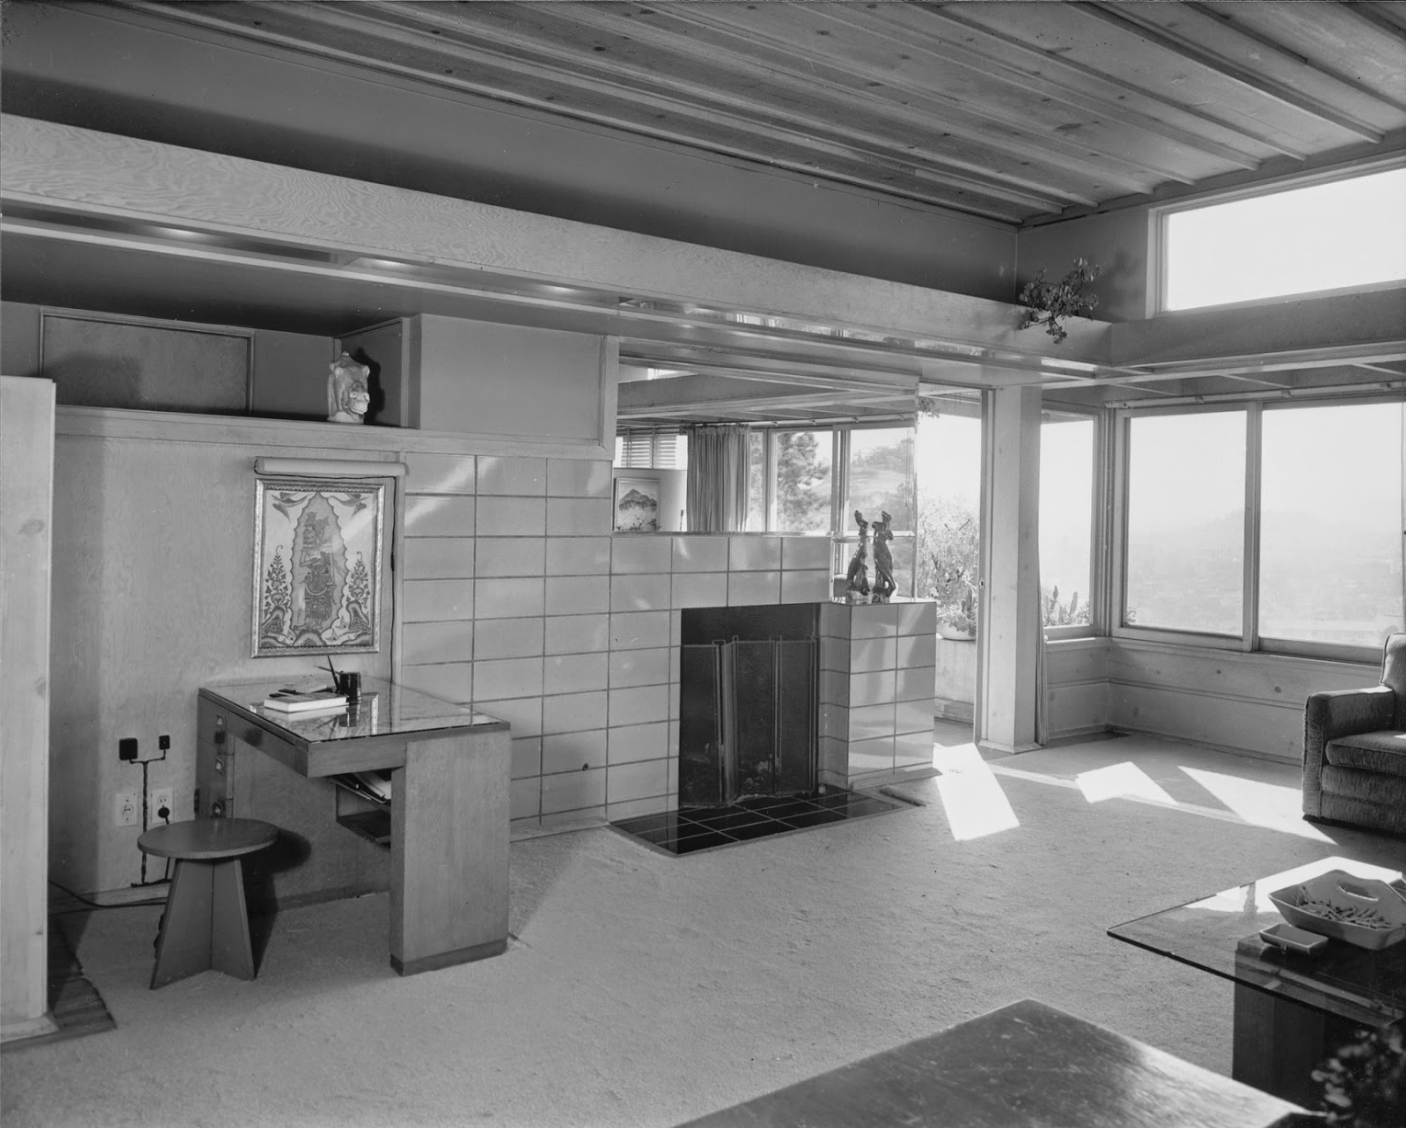 Living room inside one of the Manola Court apartments, photographed by Julius Shulman in 1938.